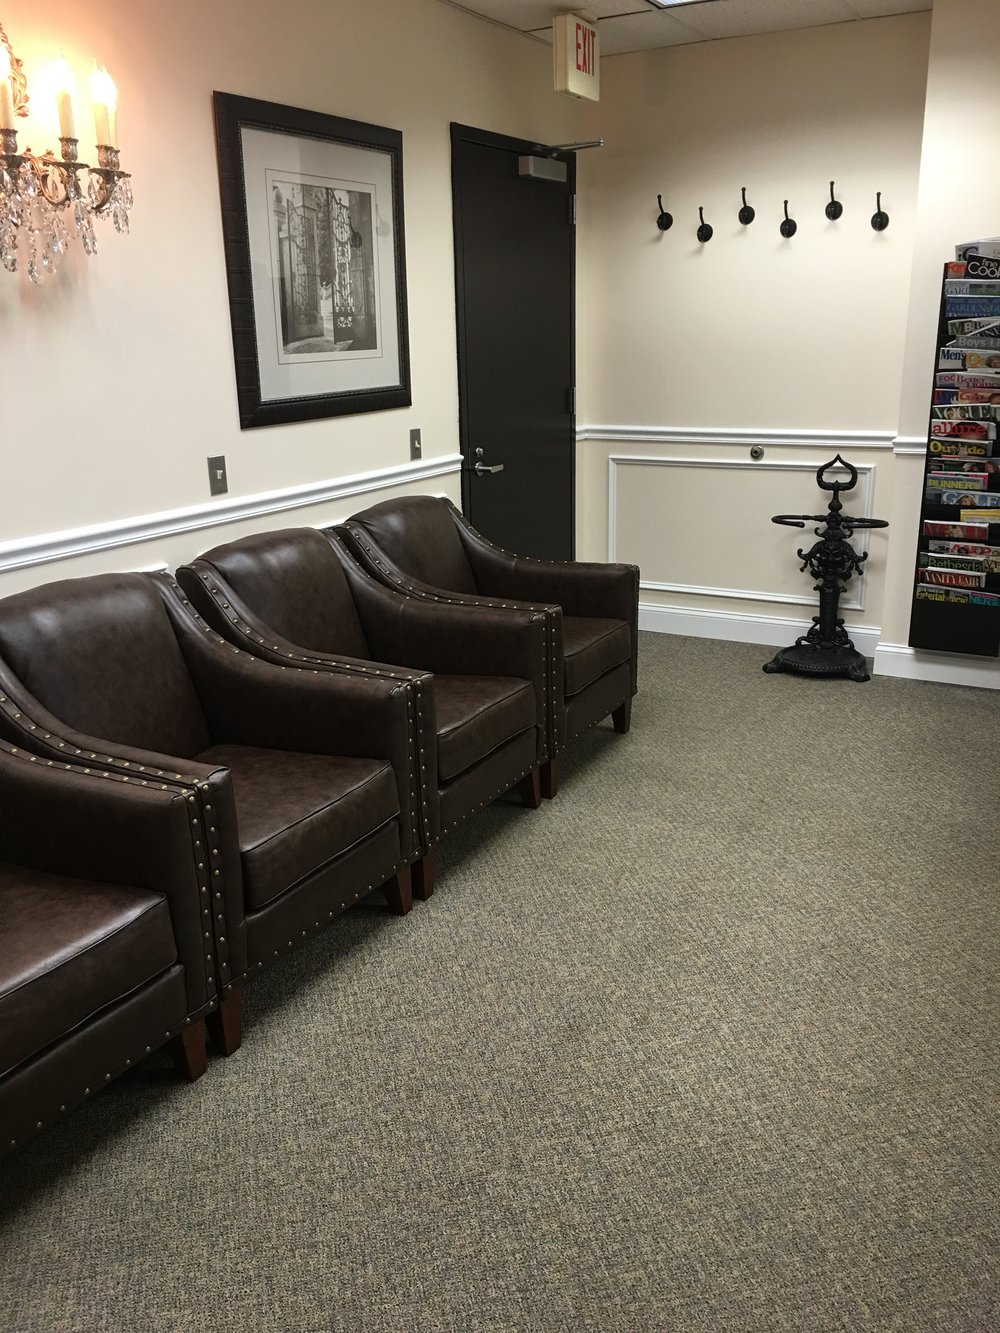 Our waiting room is comfortable and spacious.